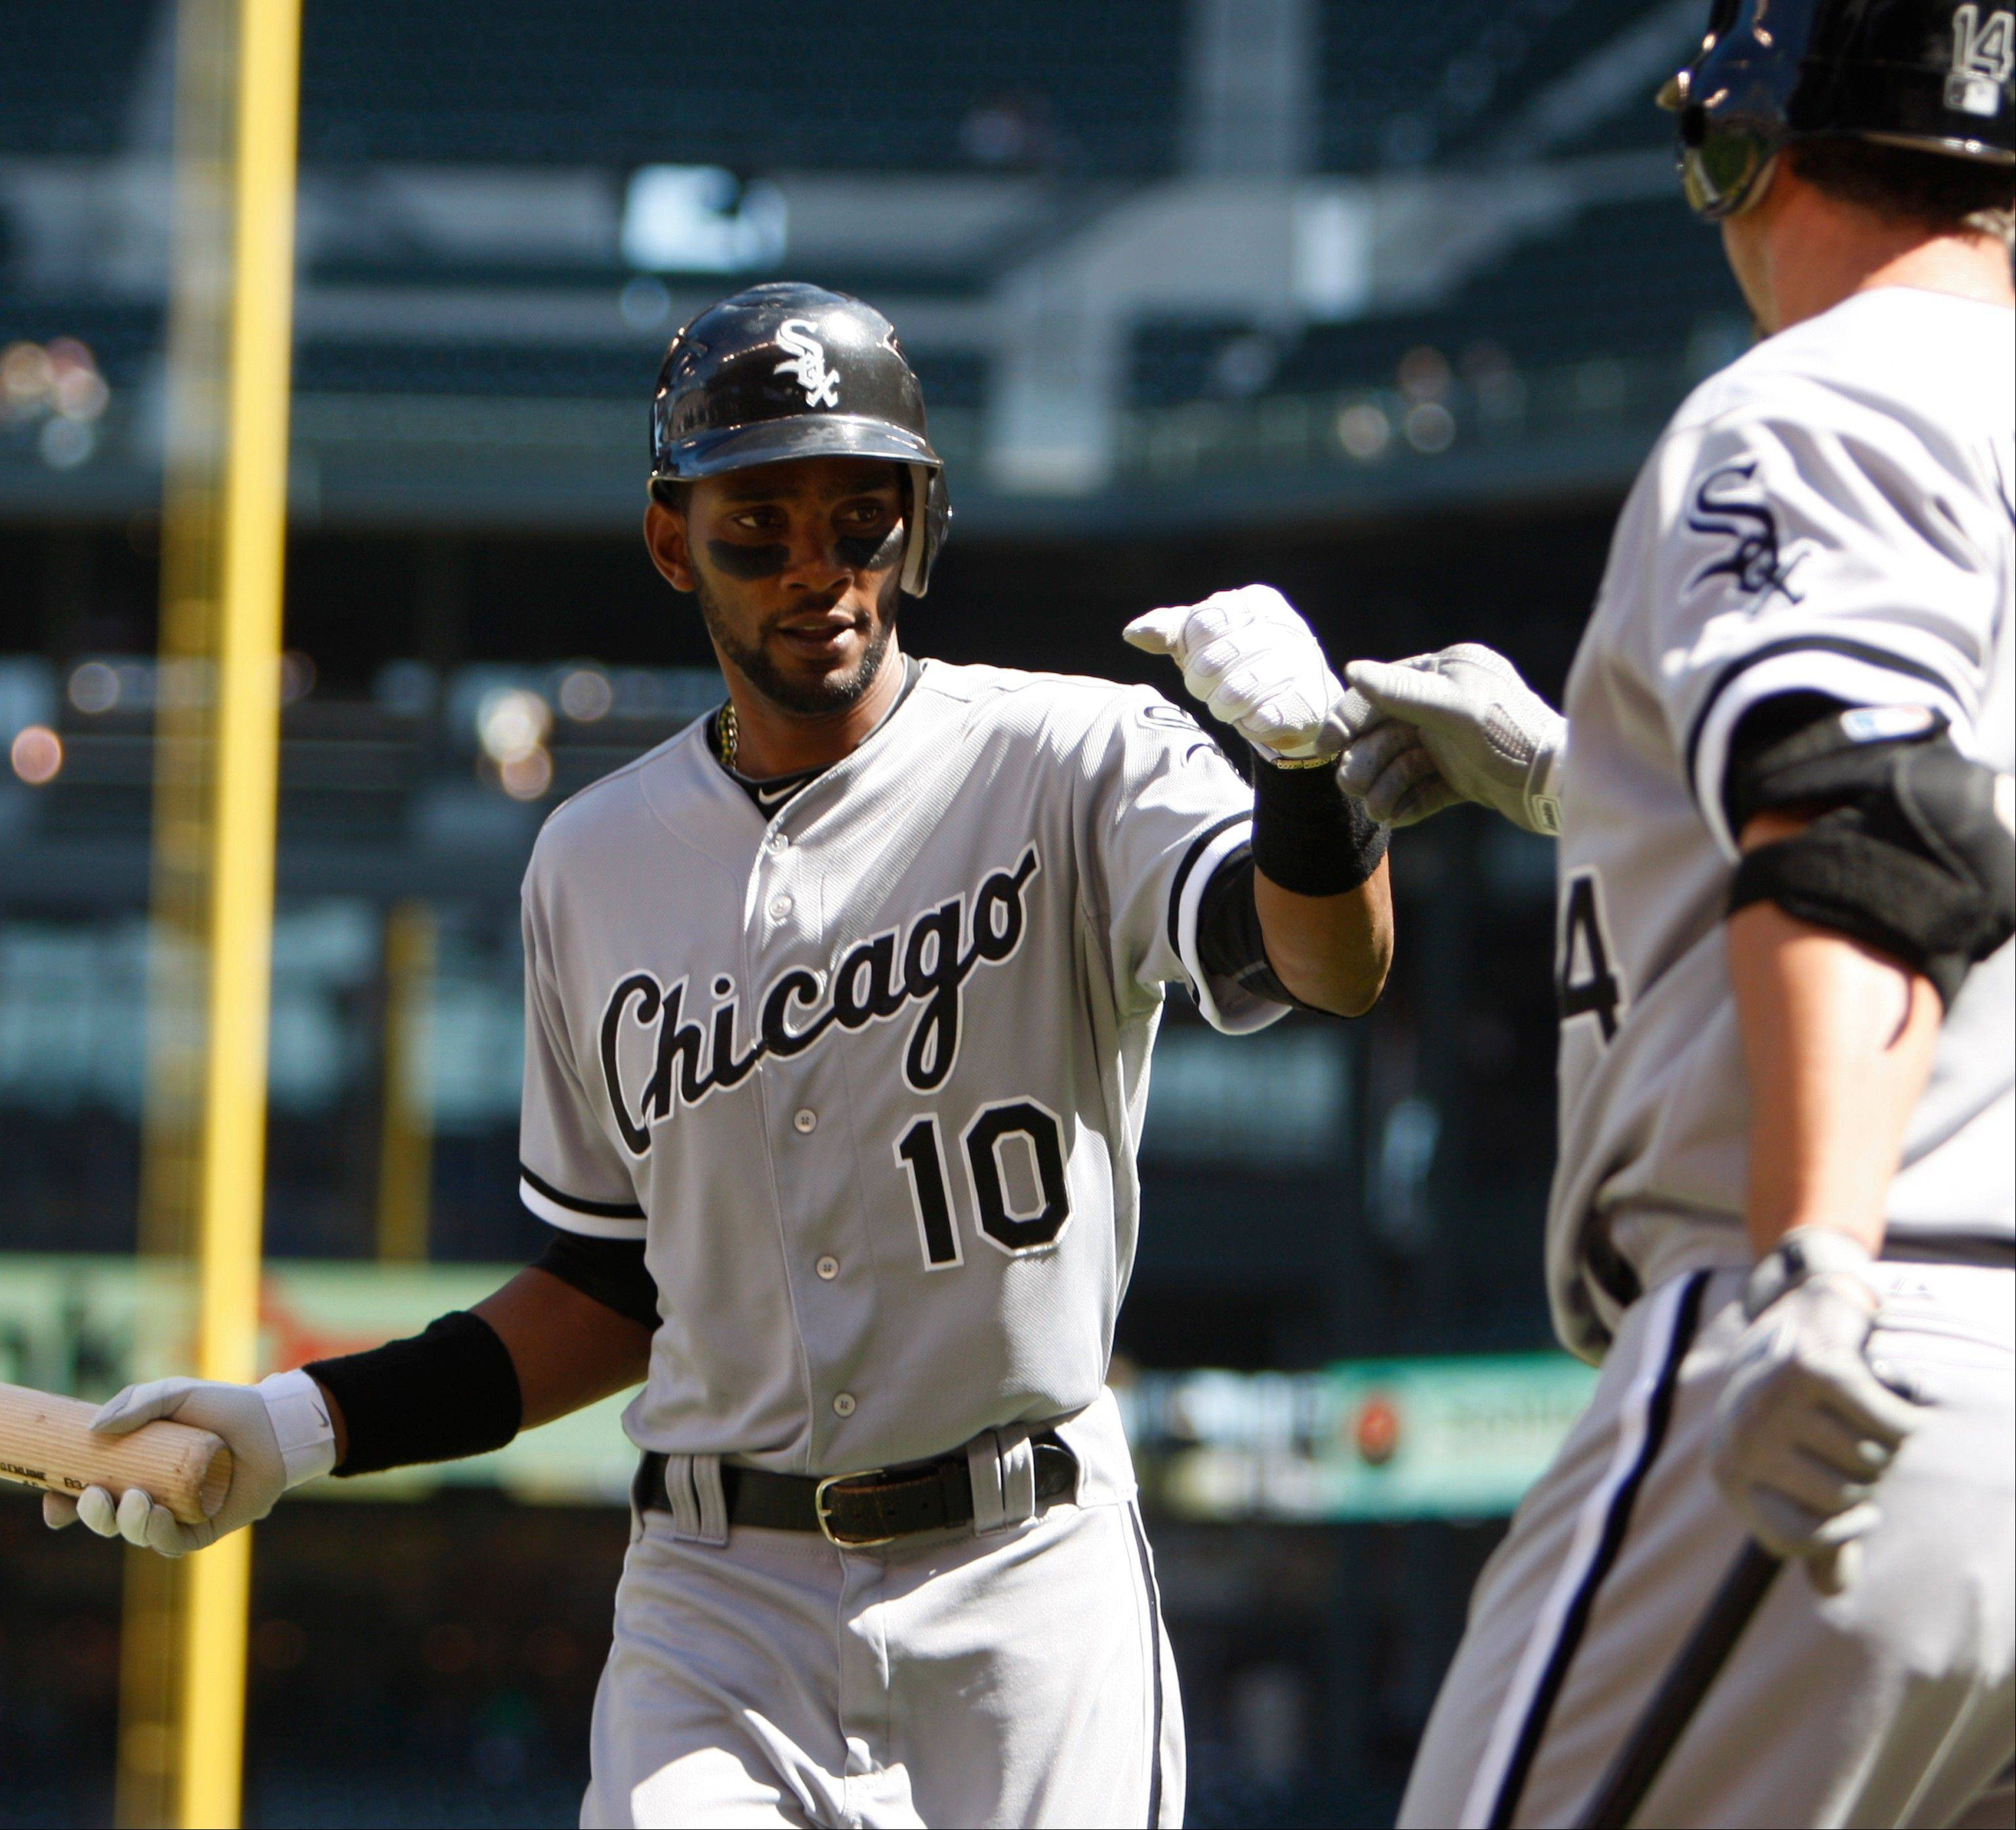 Sox sweep Mariners in Seattle